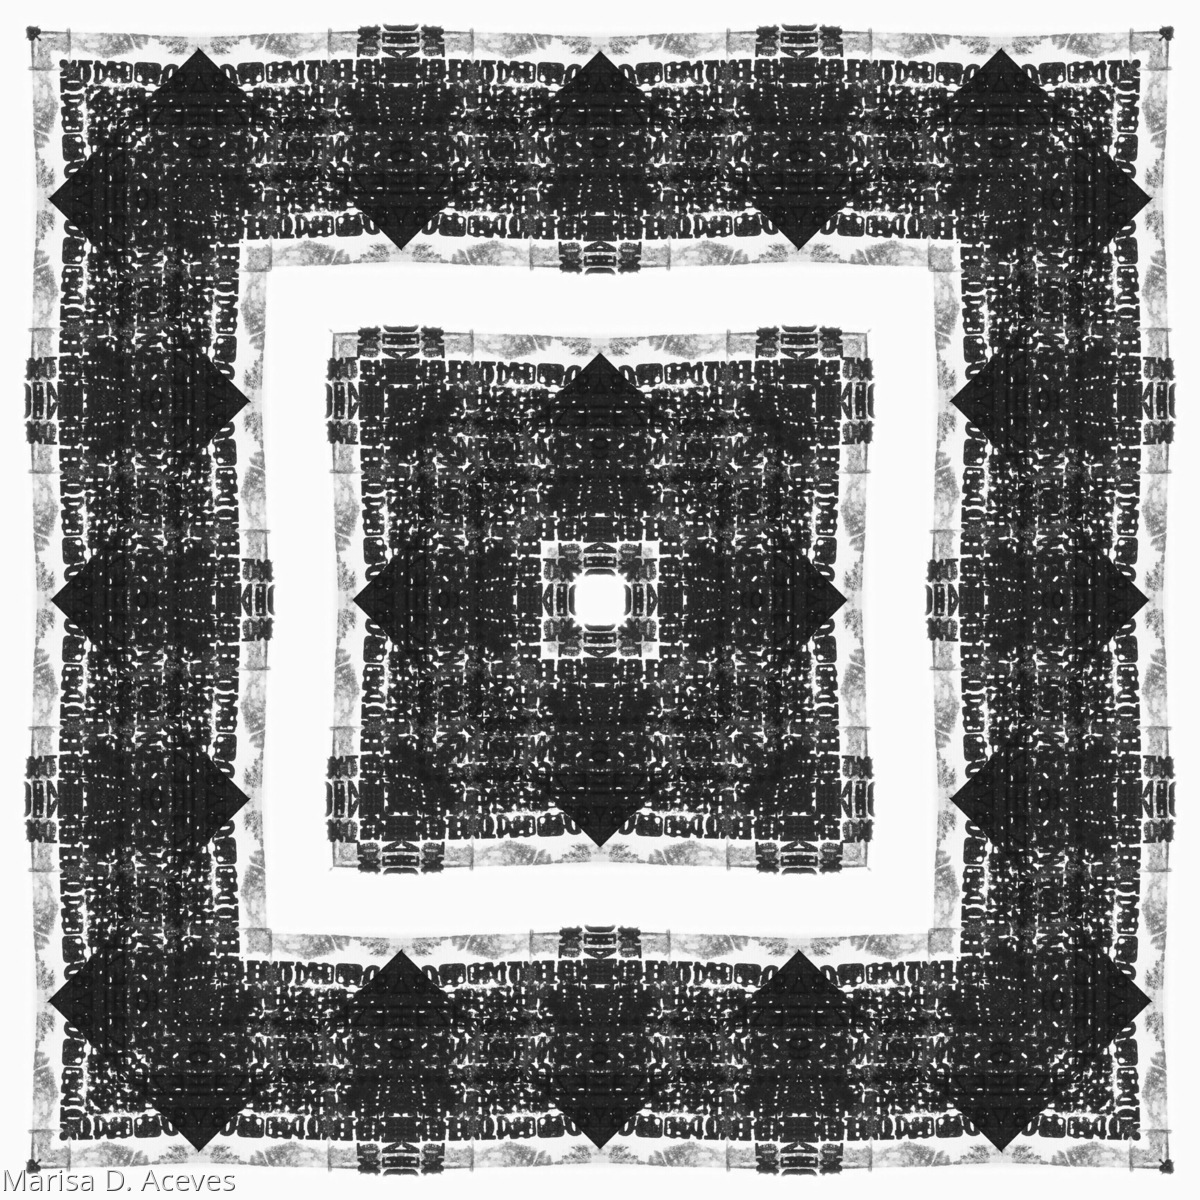 Double Square Maze (large view)